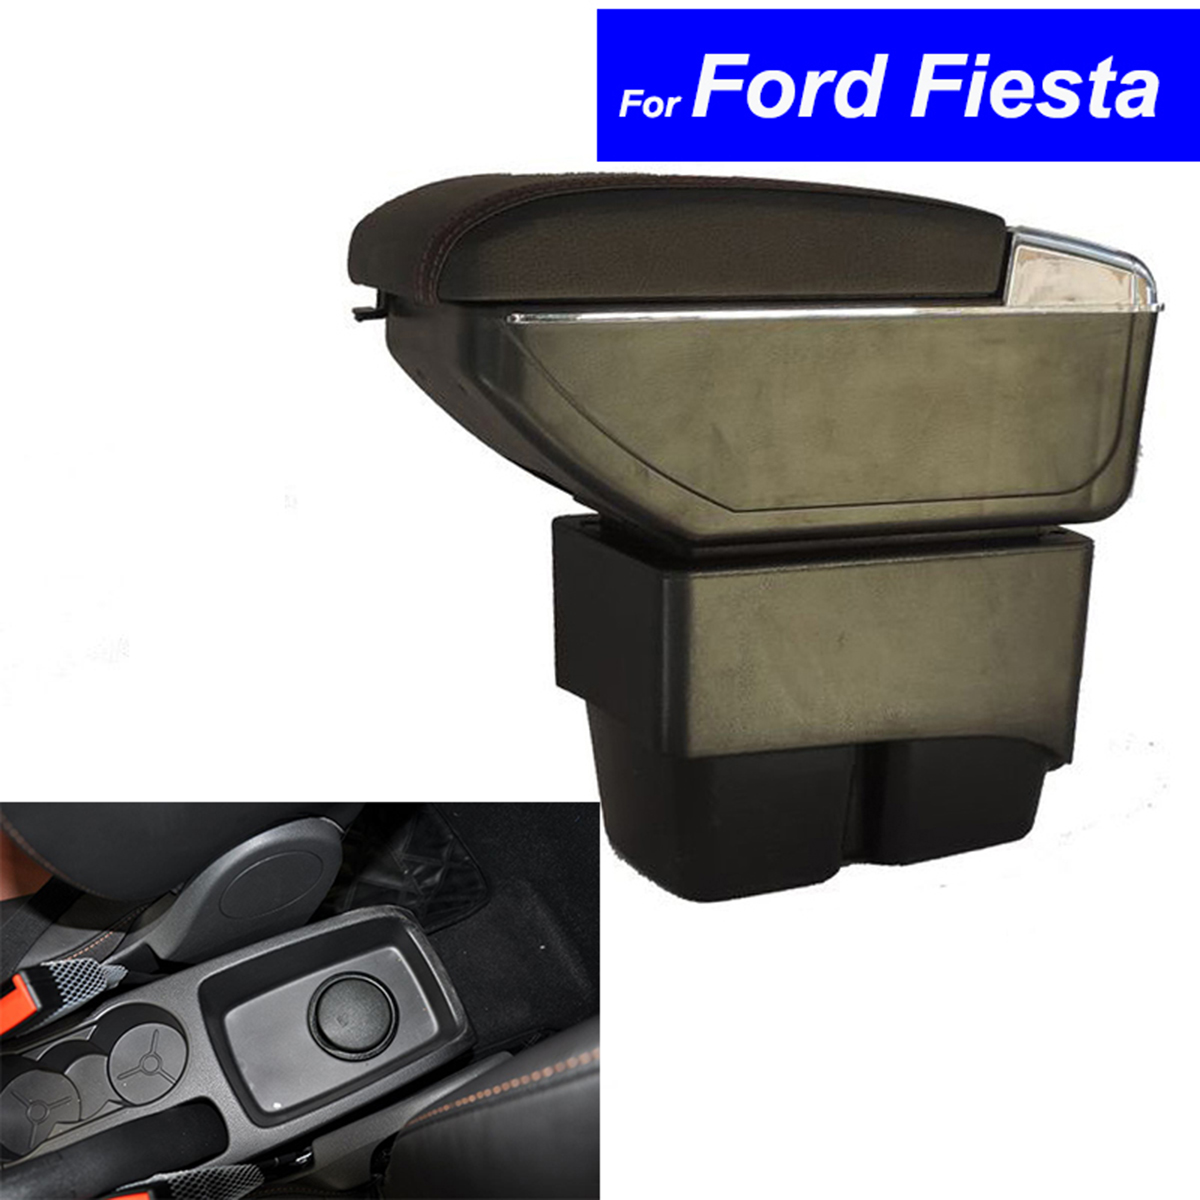 Leather Car Center Console Armrests Storage Box for Ford Fiesta 2003 ~ 2010 2011 2012 2013 2014 Auto Parts Free Shipping  sc 1 st  AliExpress.com & Online Get Cheap Car Parts for Ford Fiesta -Aliexpress.com ... markmcfarlin.com